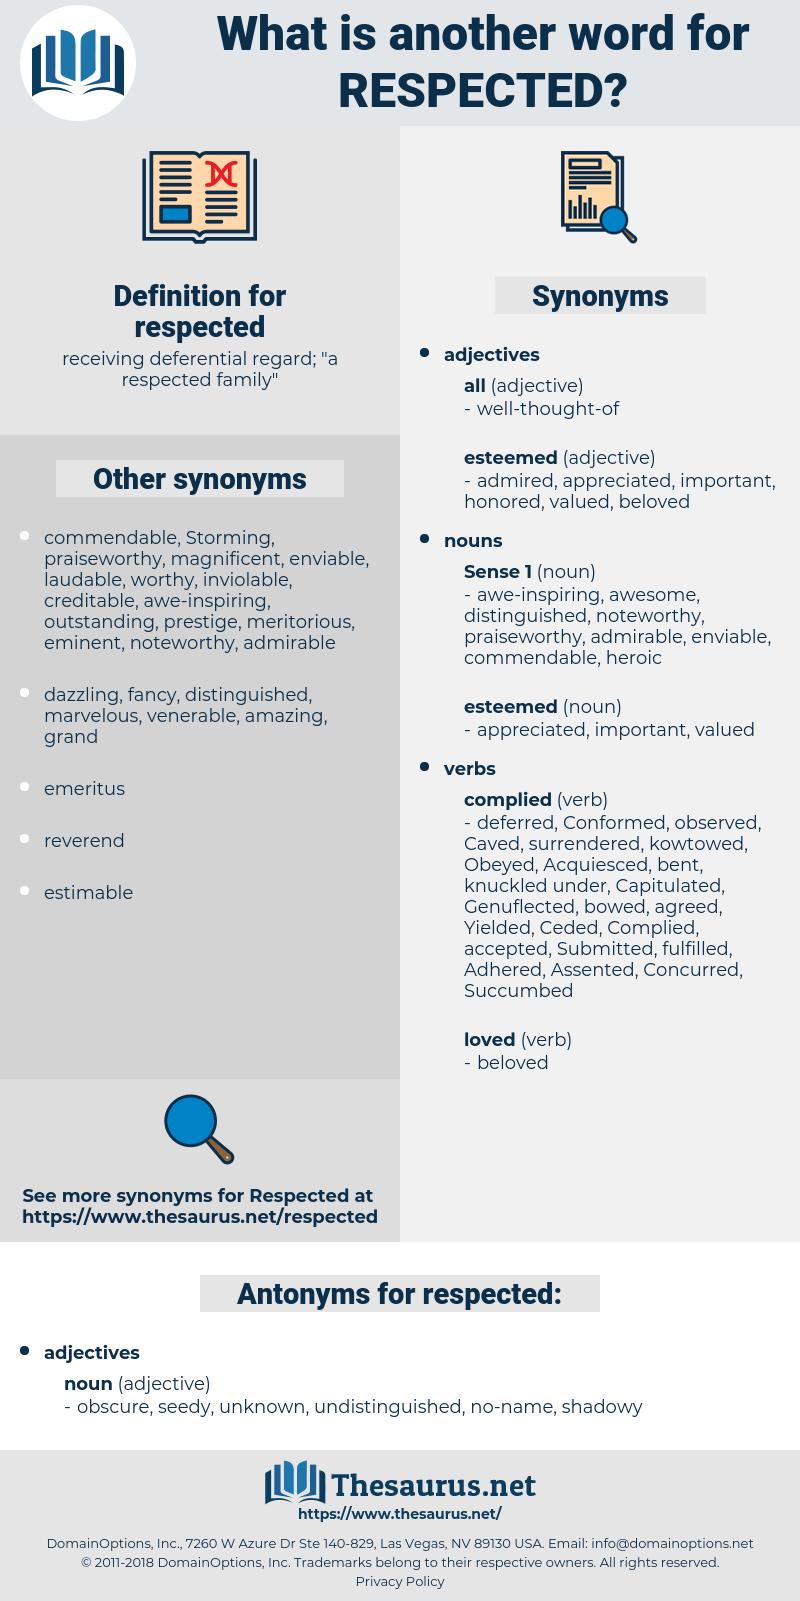 Synonyms for RESPECTED - Thesaurus.net